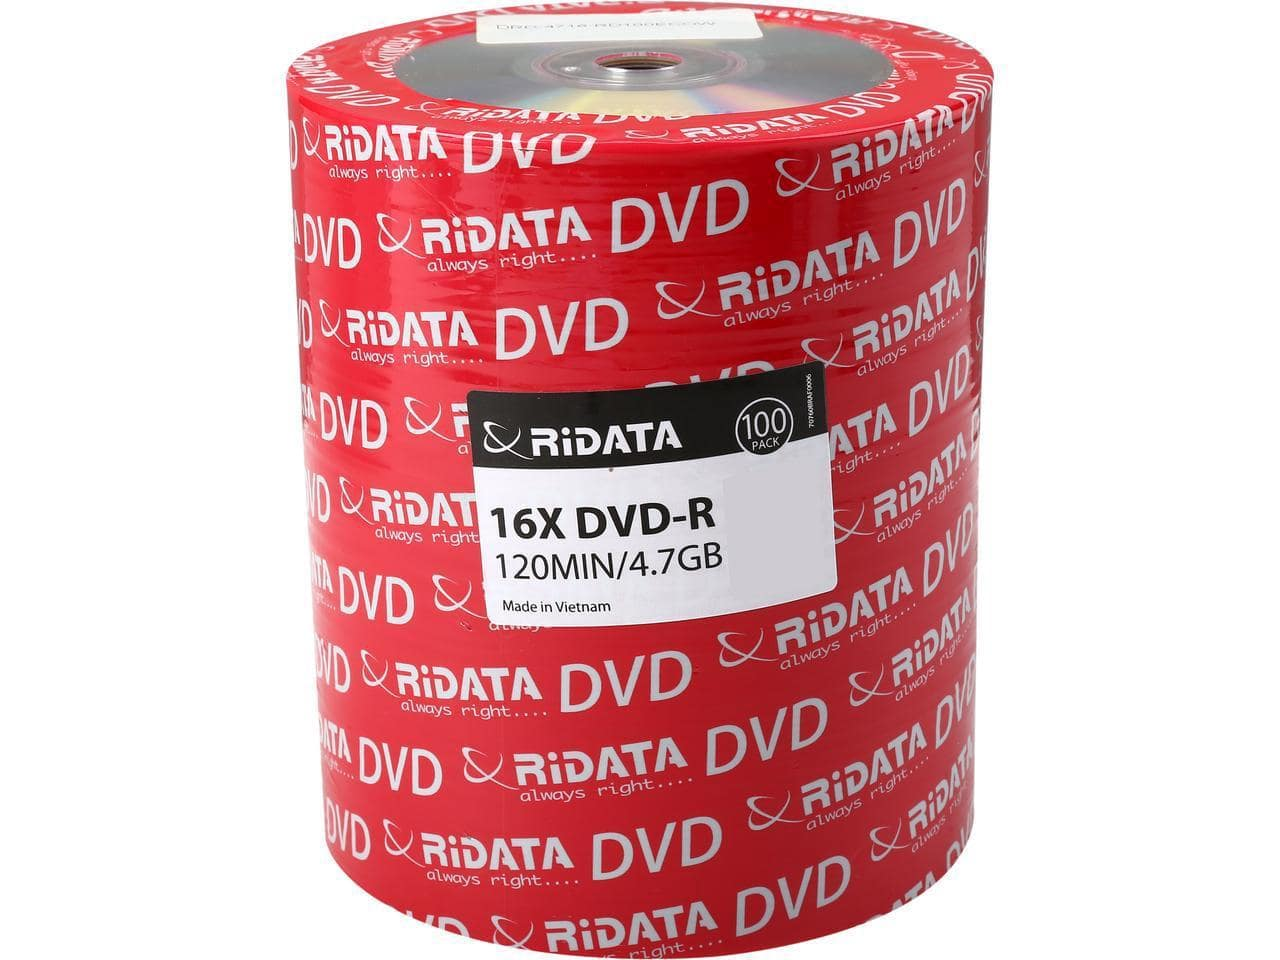 RiDATA 4.7 GB DVD-R 16X  100pk Shrink Wrap $11.99